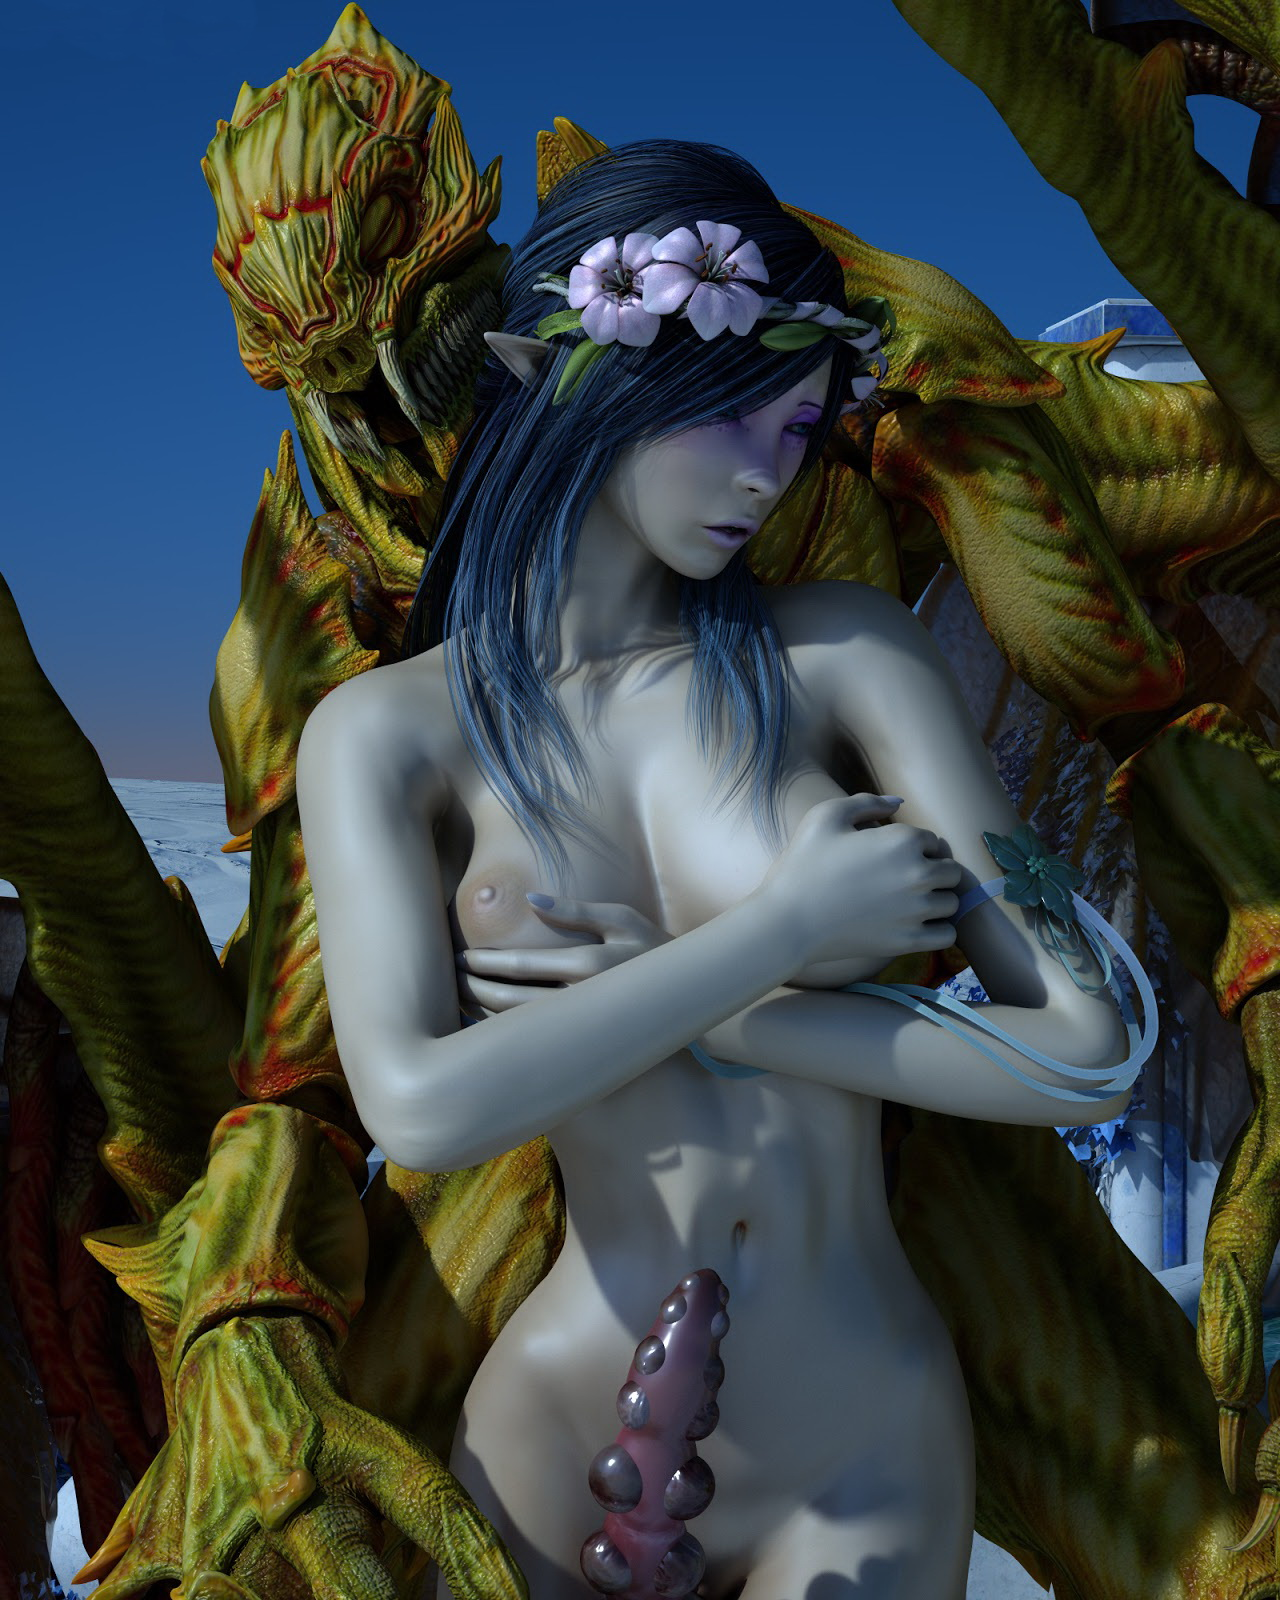 Elven princess and monster hentai erotic interracial housewives